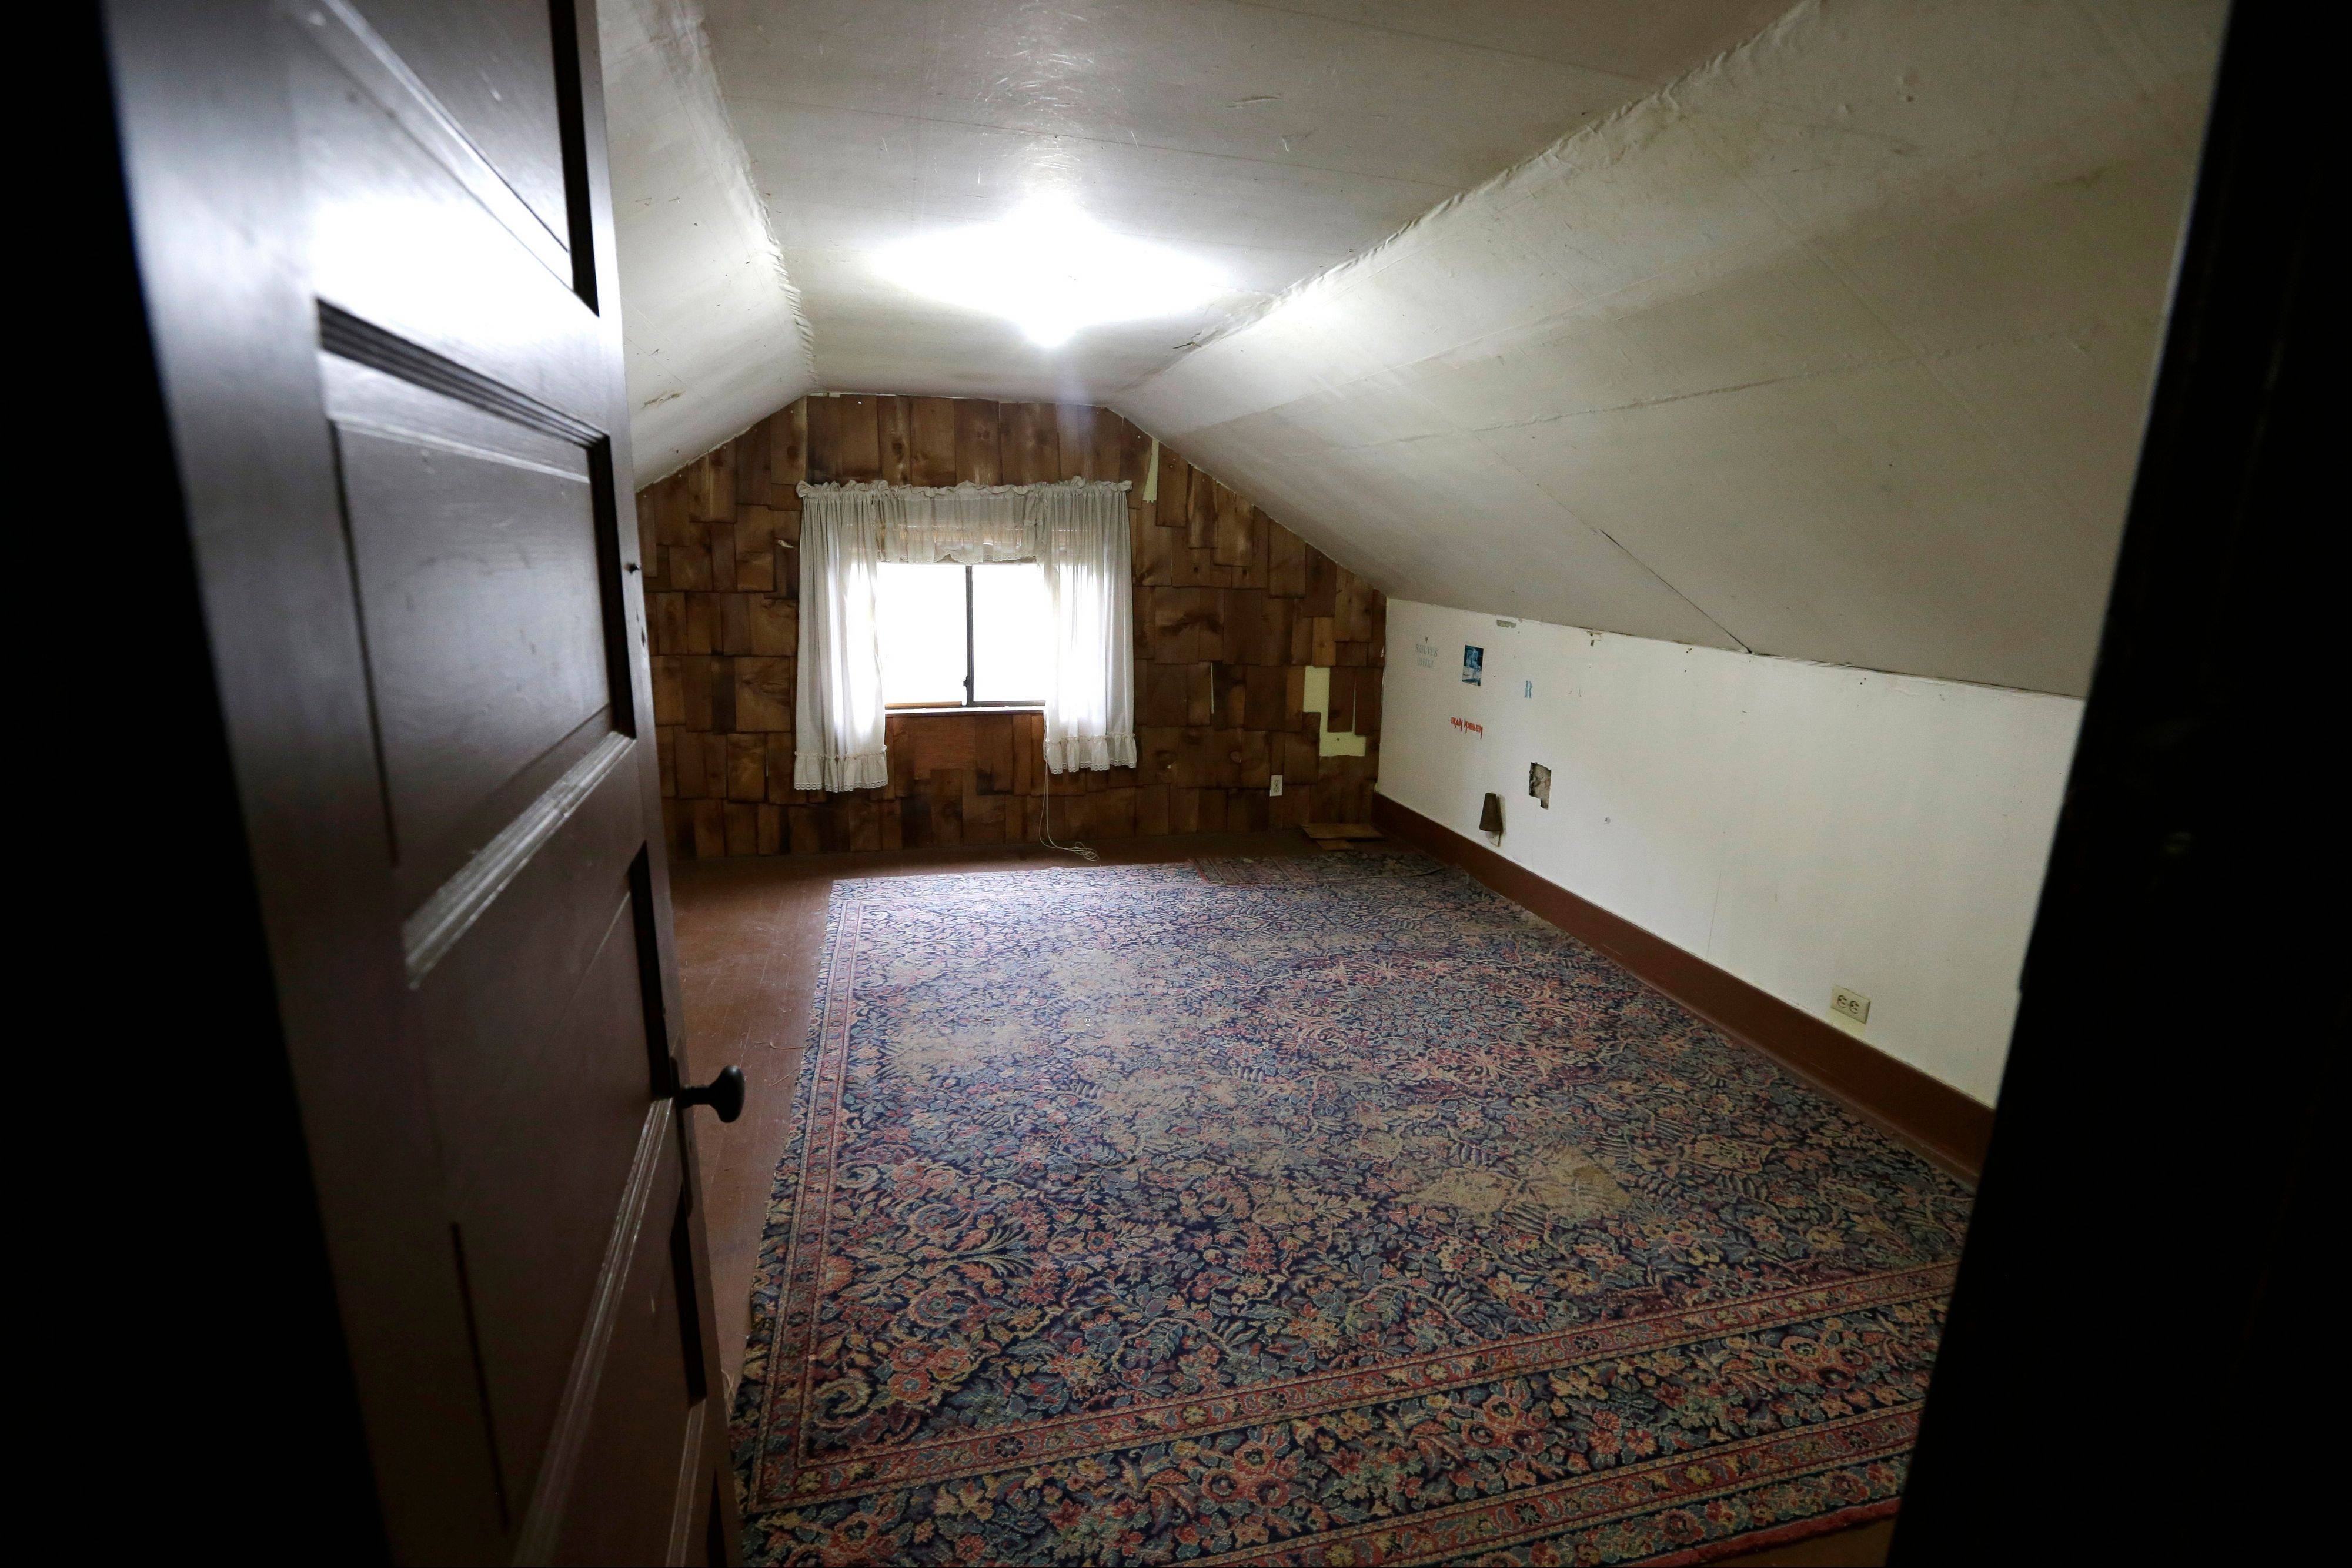 An attic bedroom used by Kurt Cobain, the late frontman of Nirvana, is said by realtors to still include the original rug from when he lived in his childhood home in Aberdeen, Wash.